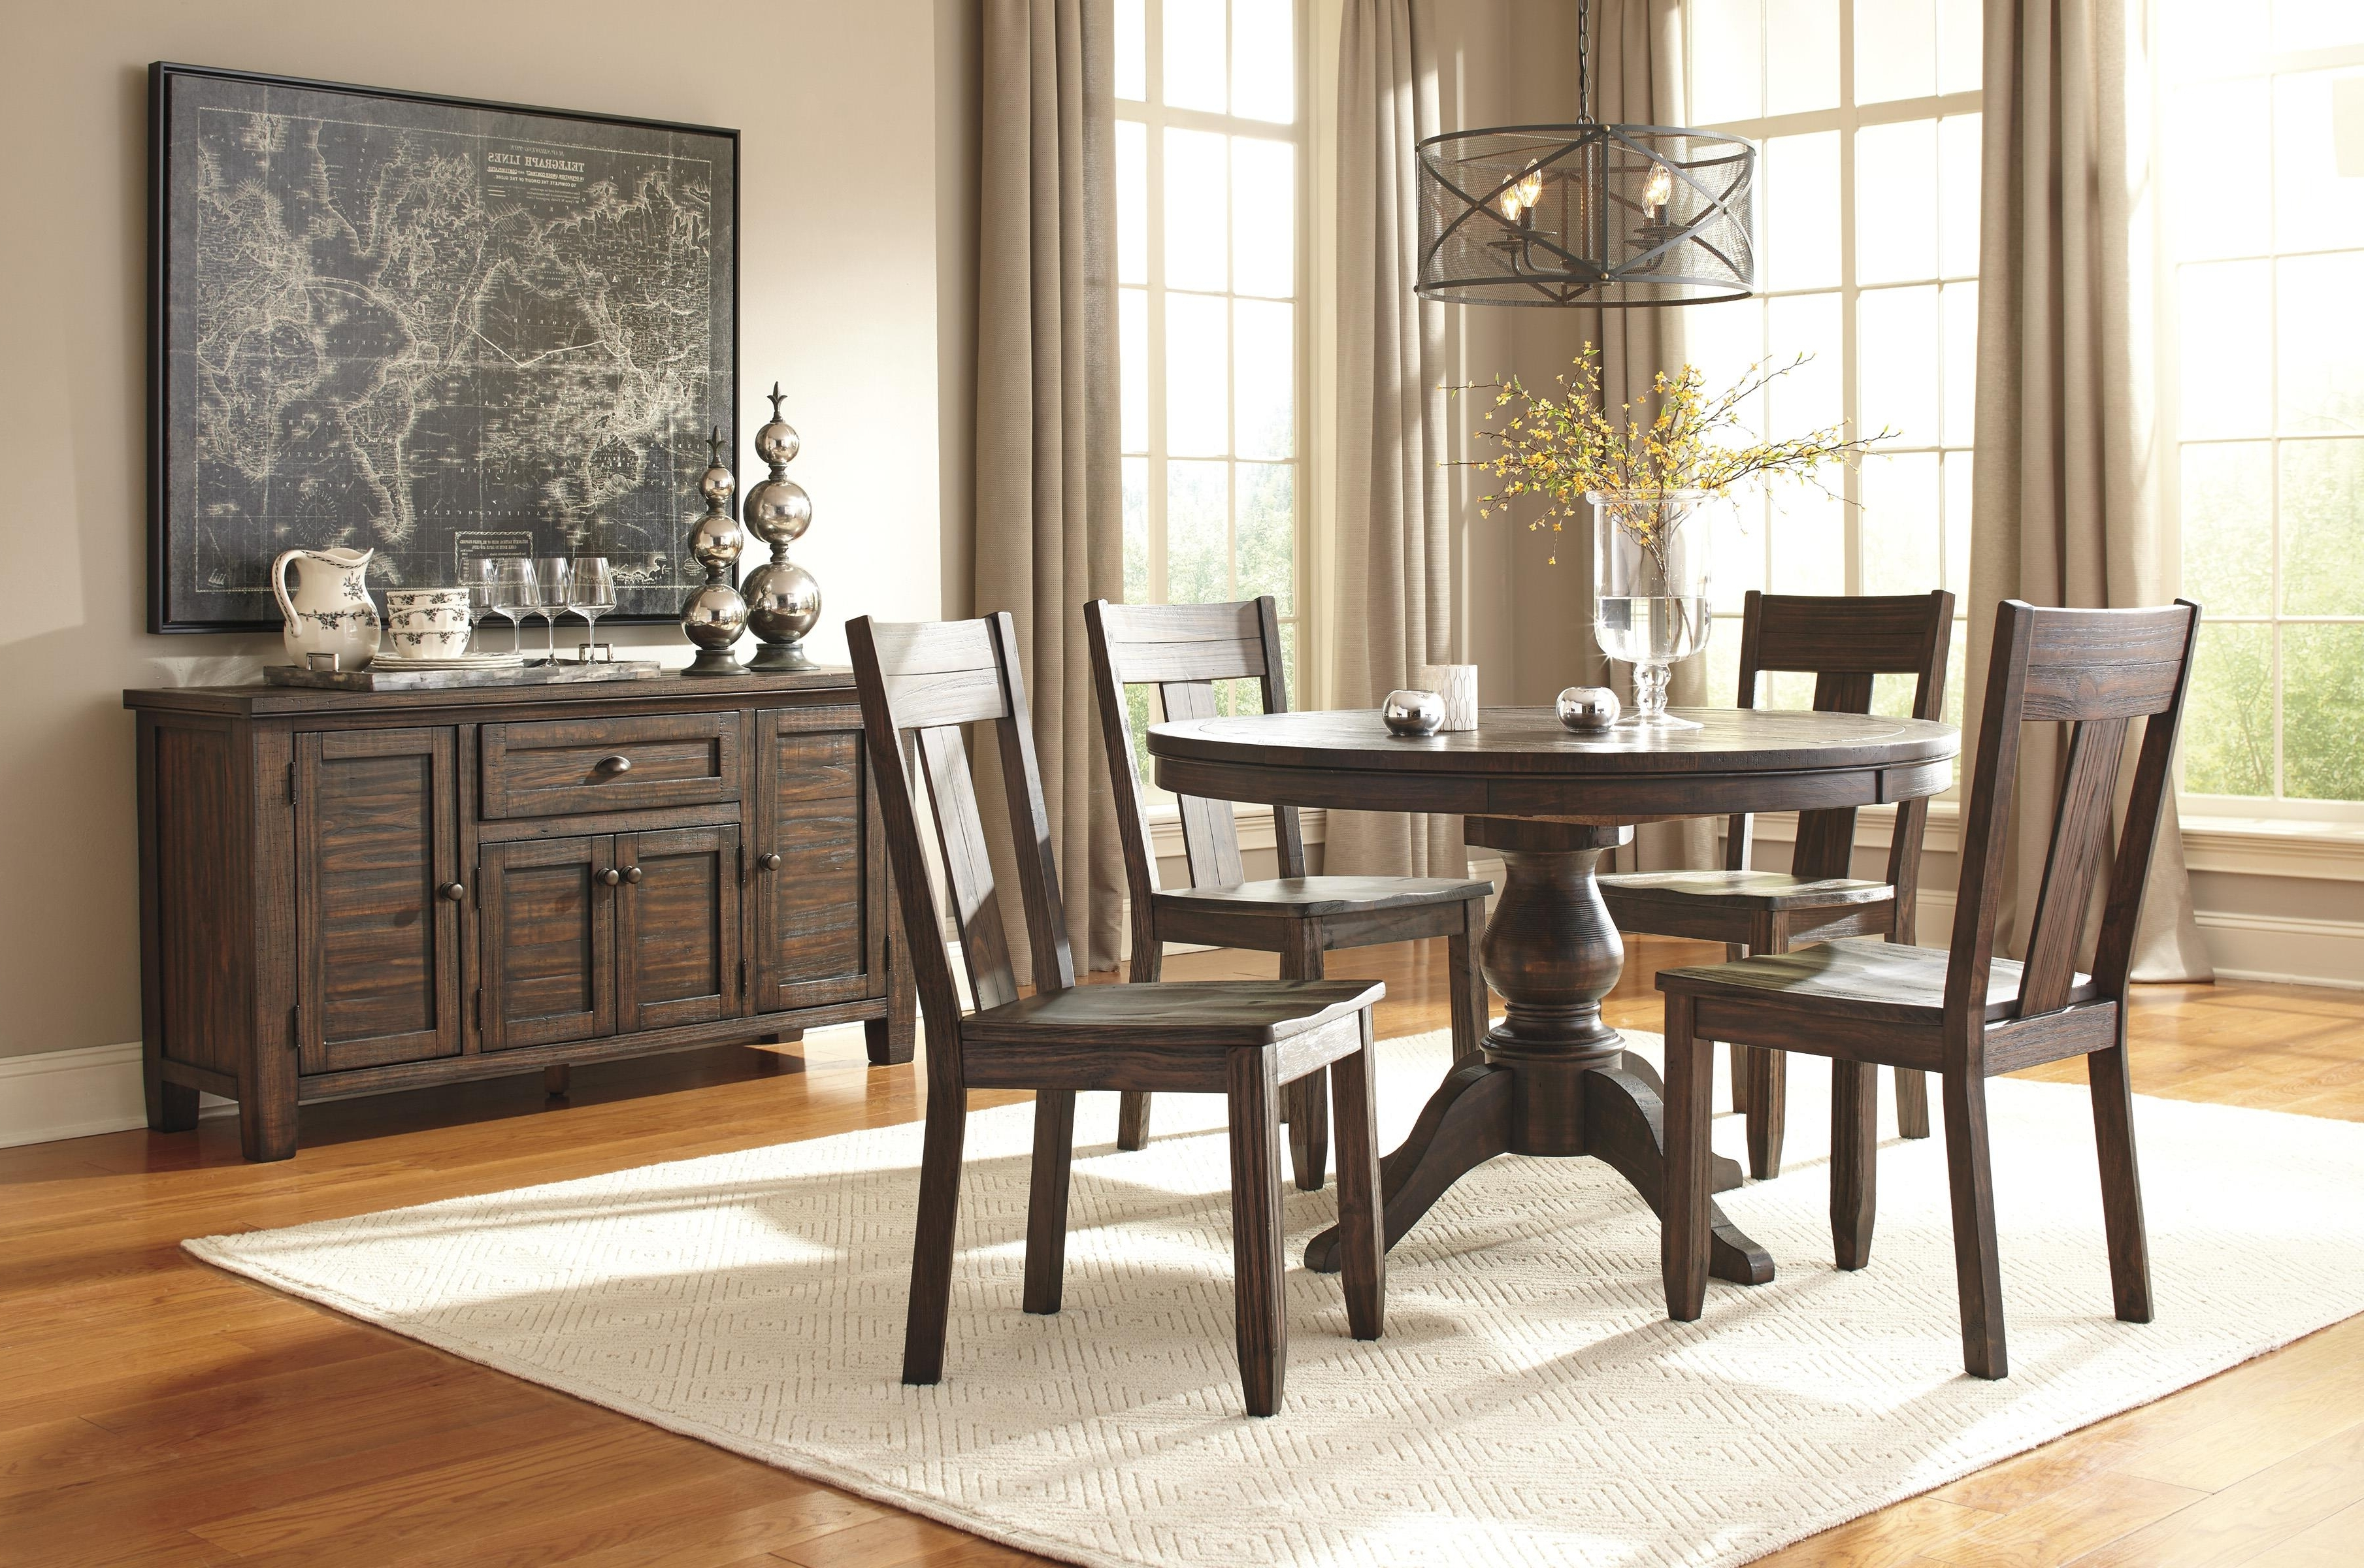 2018 Jaxon 5 Piece Round Dining Sets With Upholstered Chairs In Signature Designashley Trudell 5 Piece Round Dining Table Set (Gallery 12 of 25)